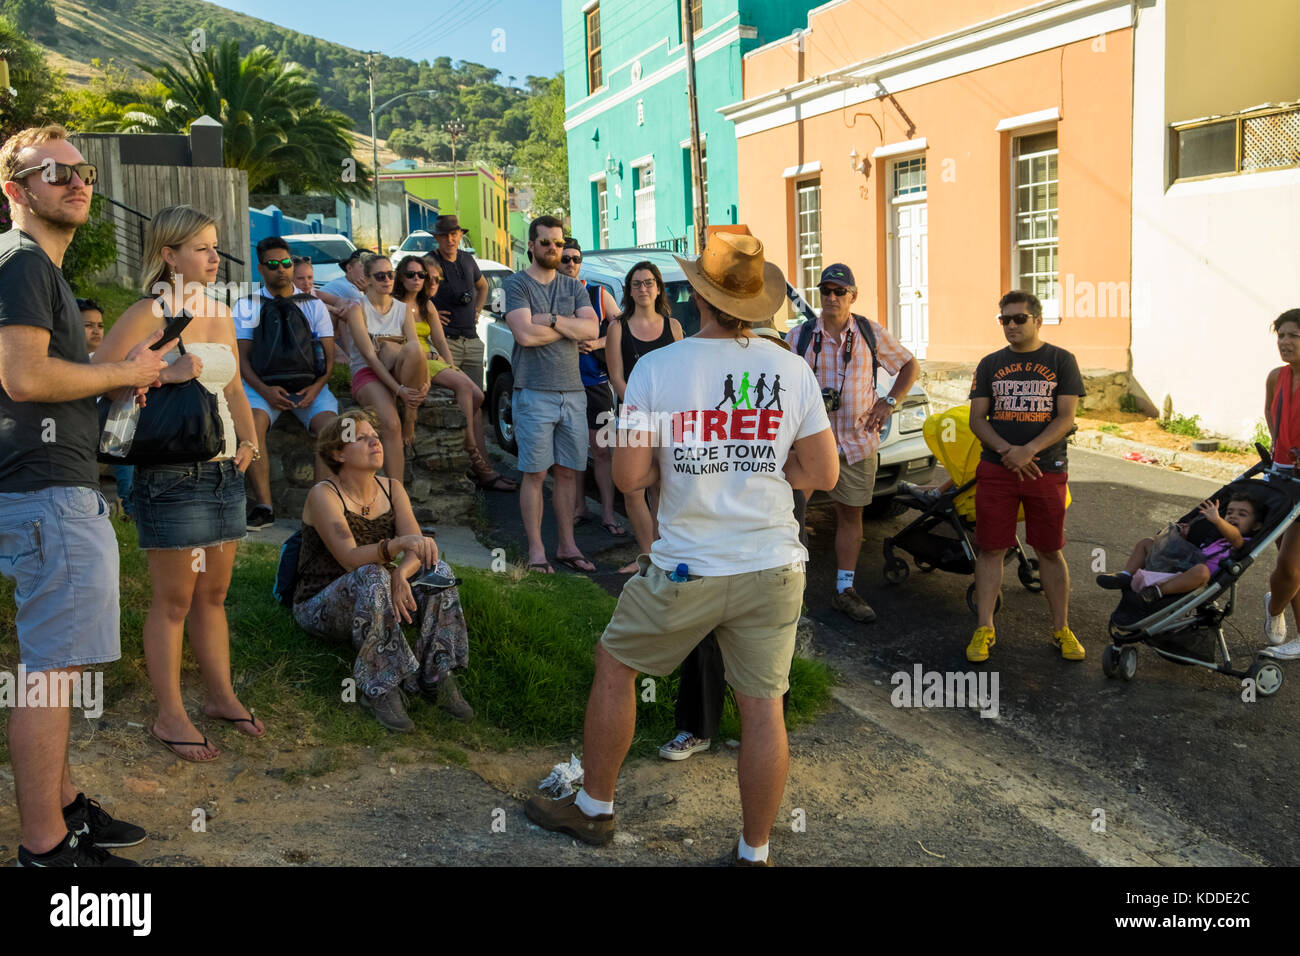 A group of visitors enjoying a free walking tour while exploring Bo Kaap, Cape Town, South Africa - Stock Image